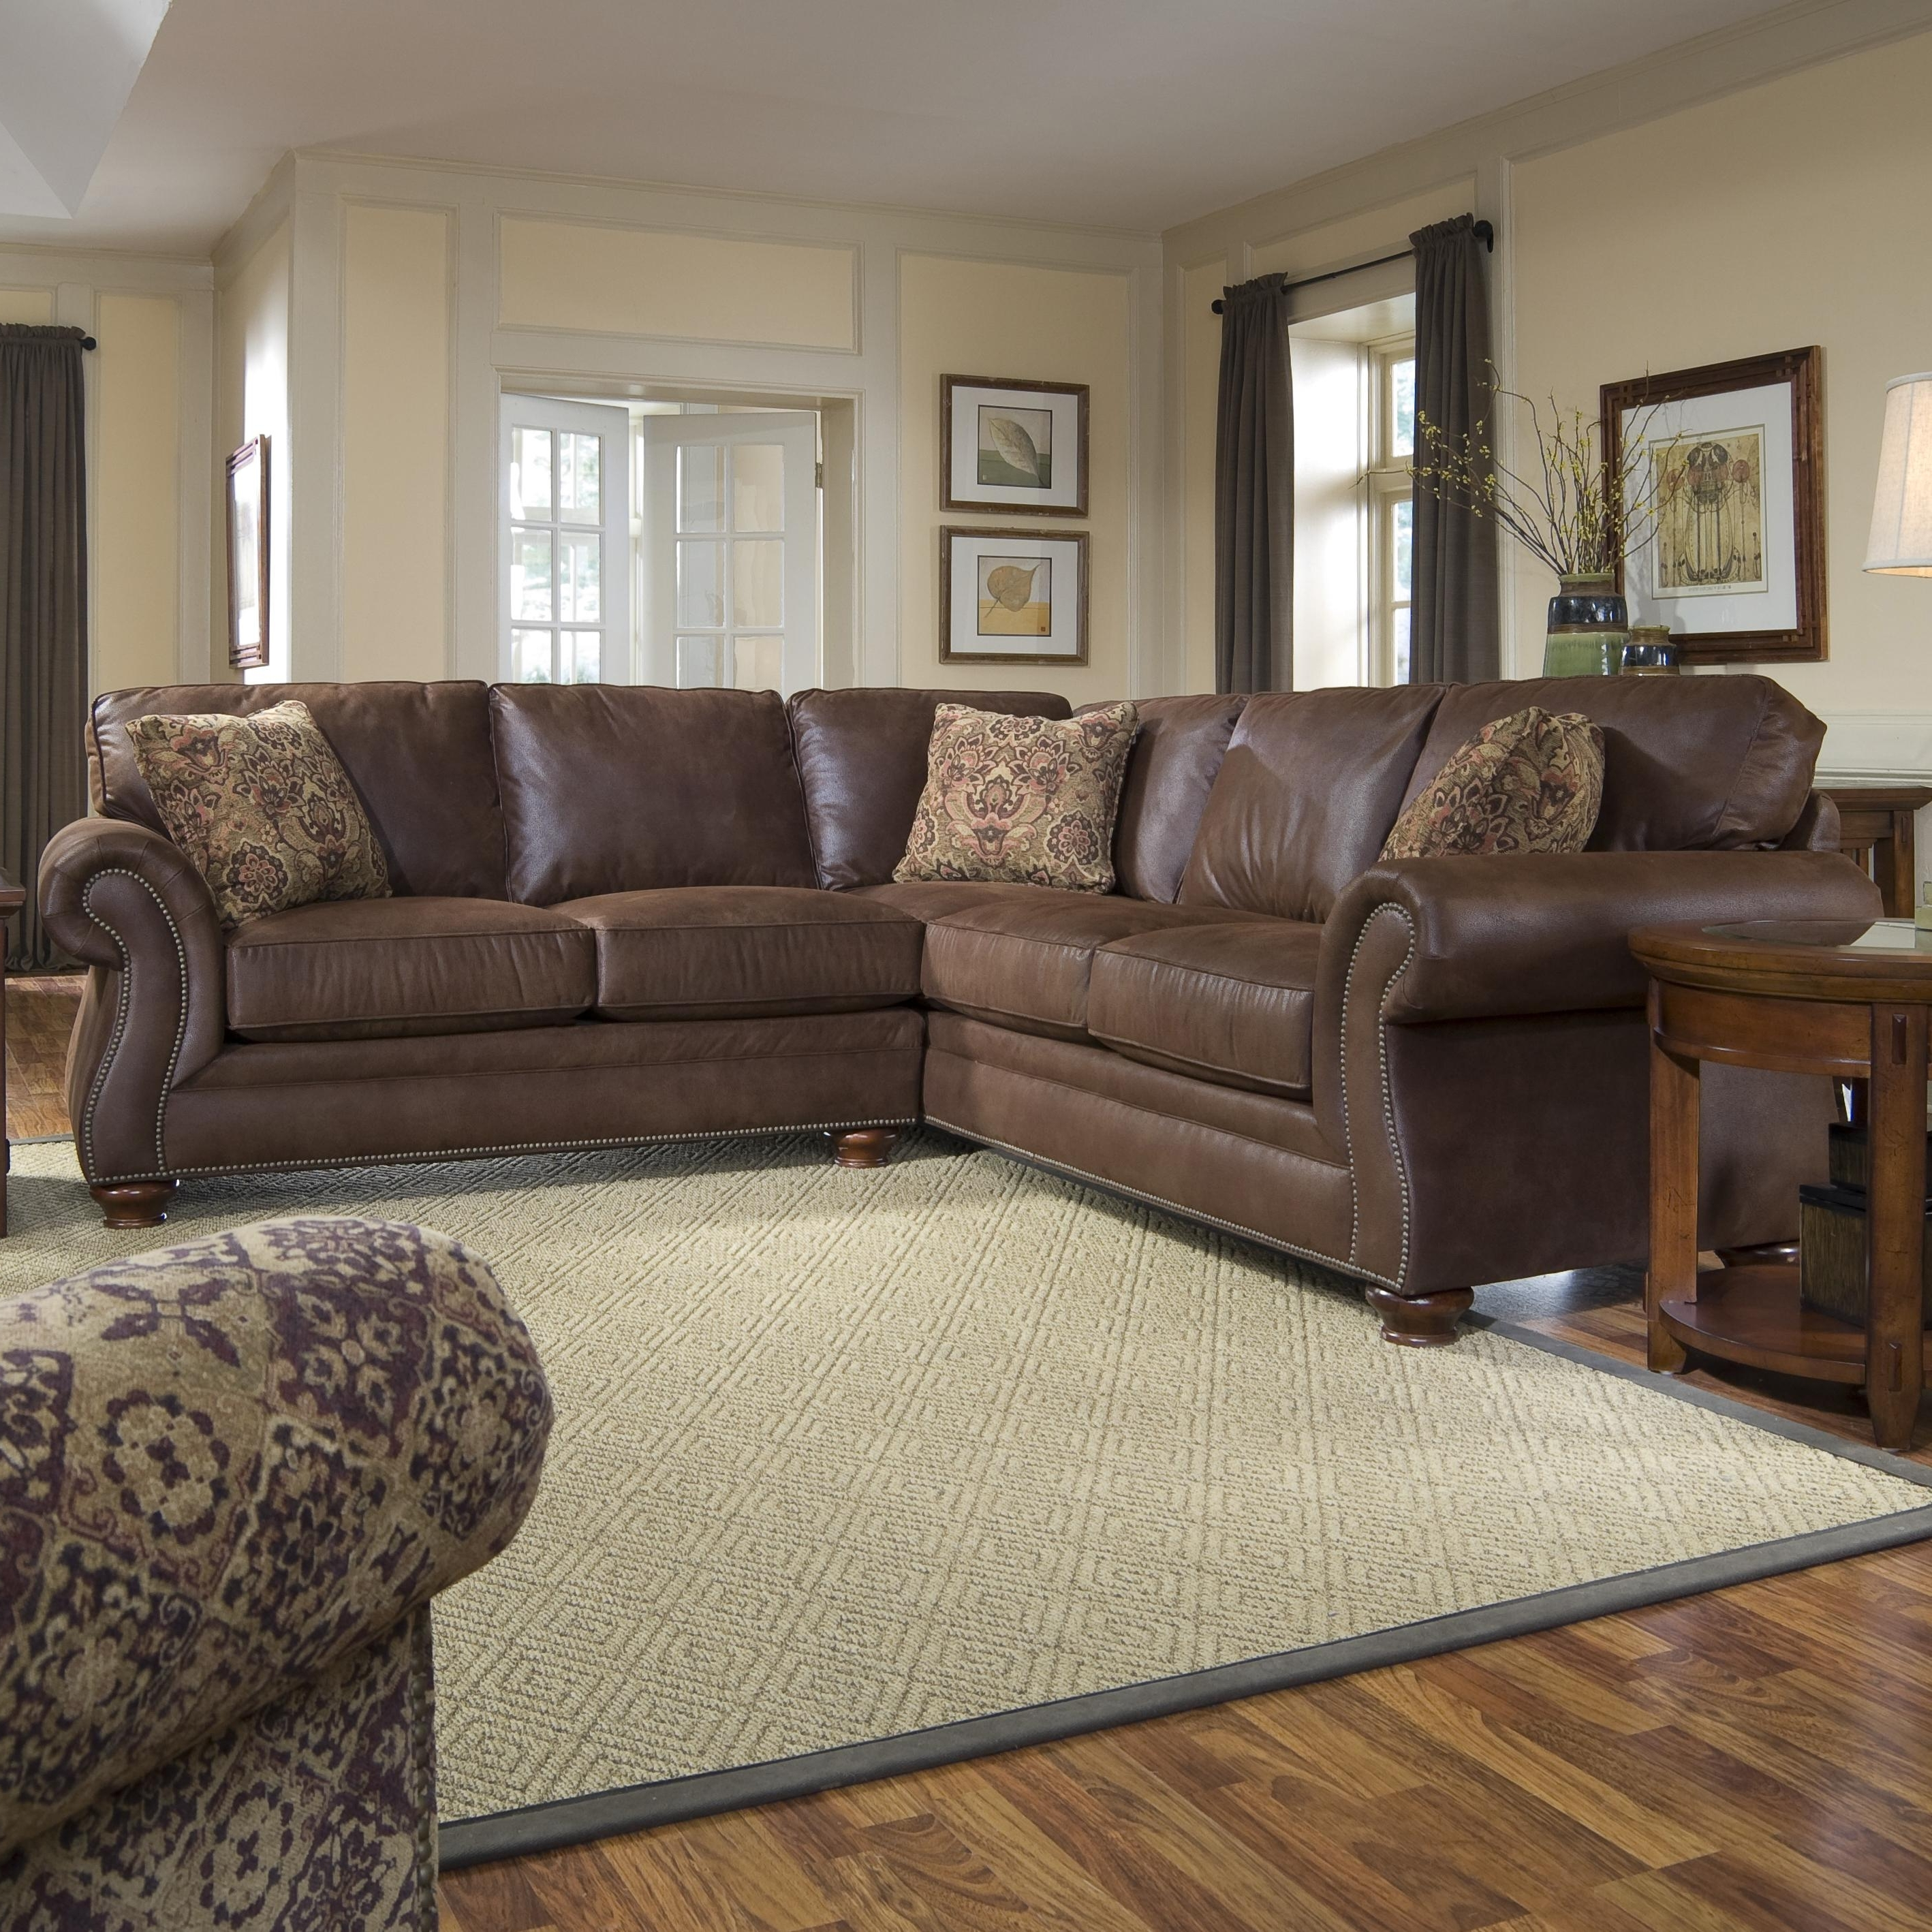 Broyhill Of Regarding Broyhill Sectional Sofas (View 4 of 20)